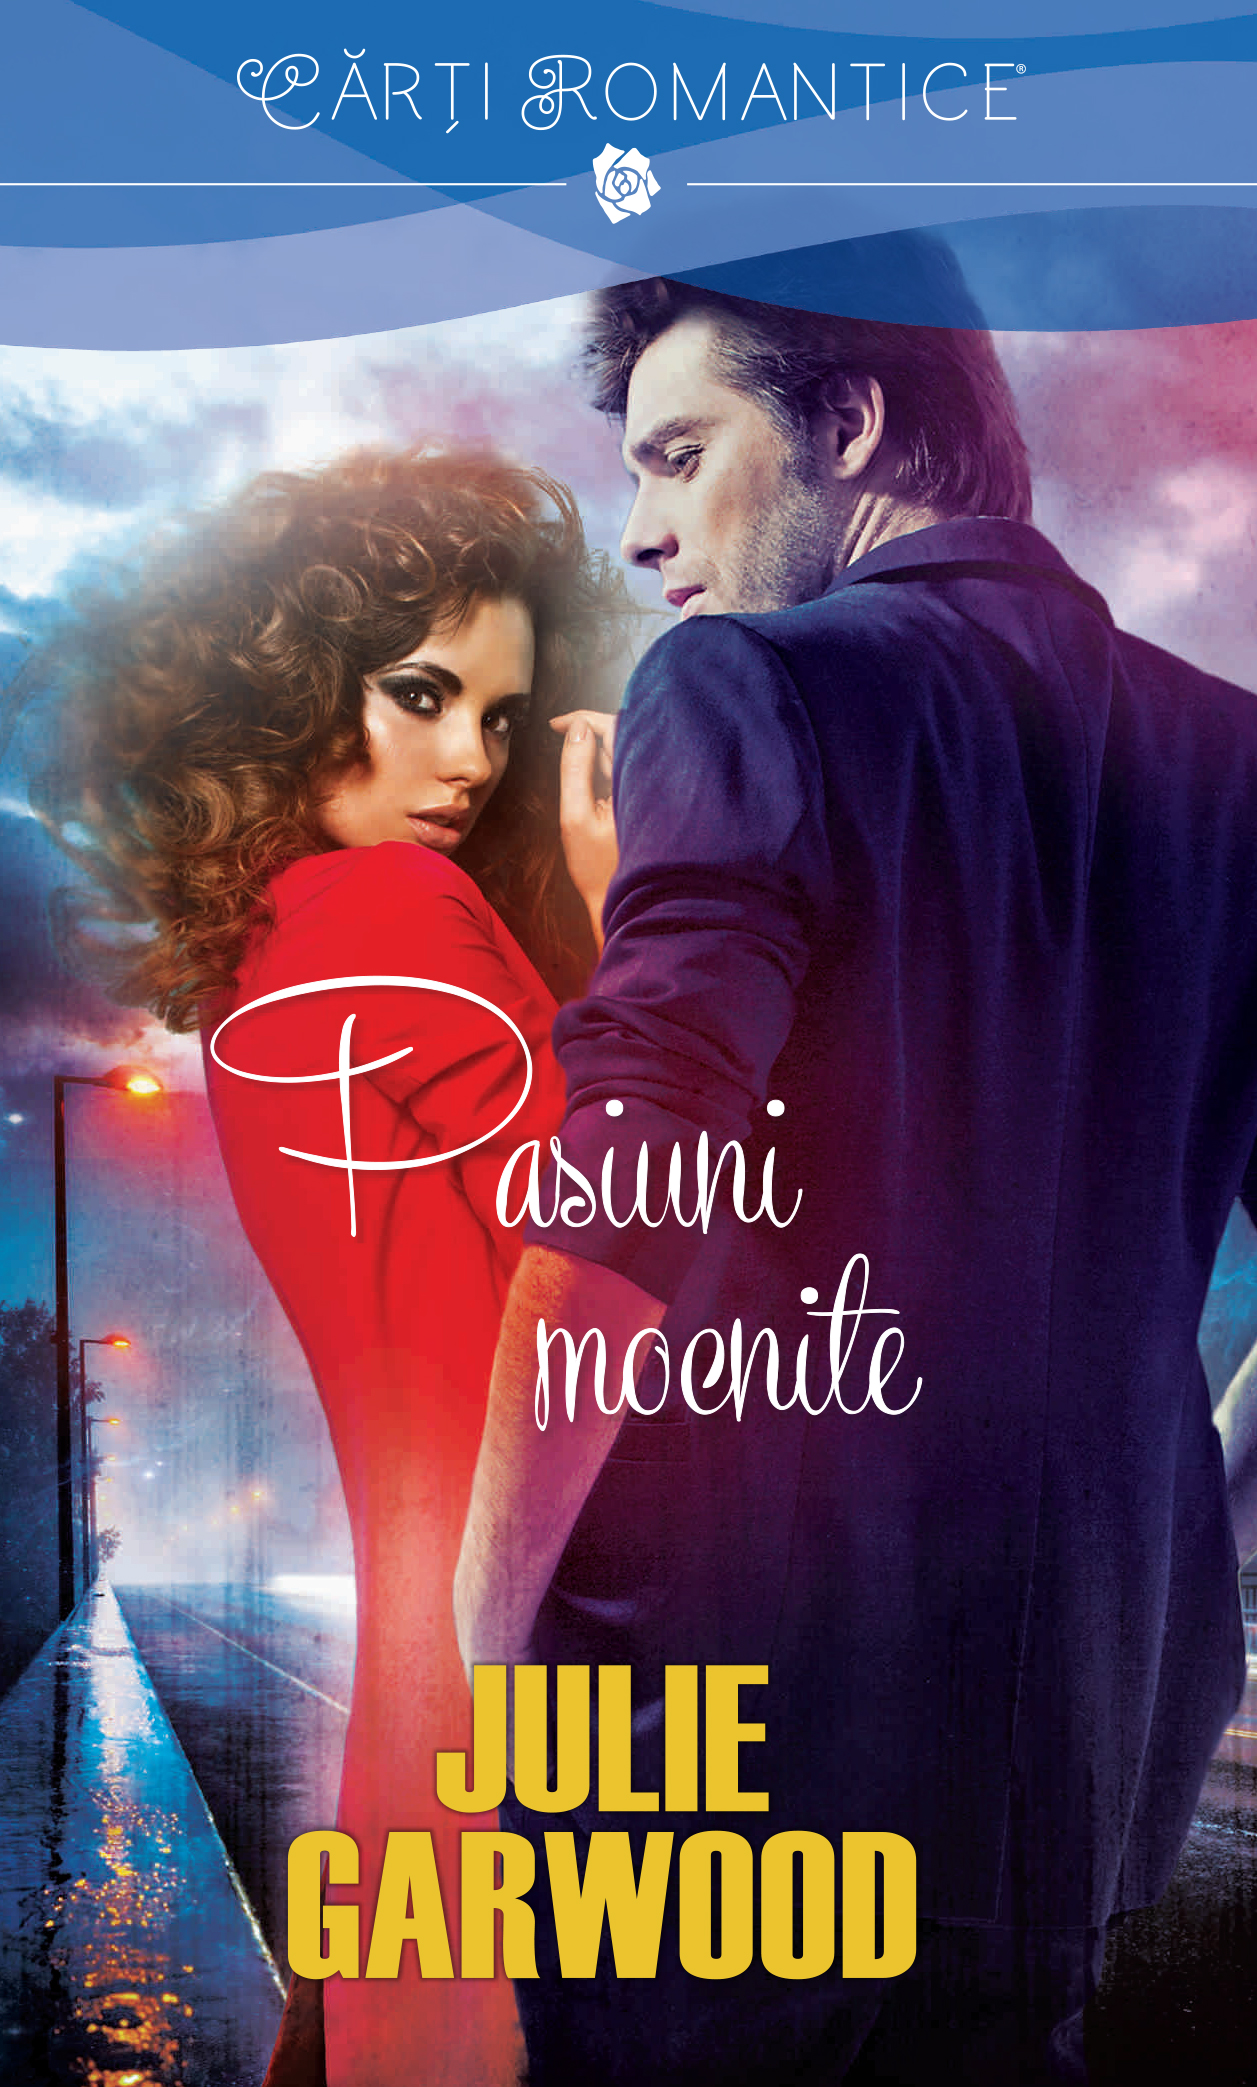 Pasiuni mocnite imagine 2021